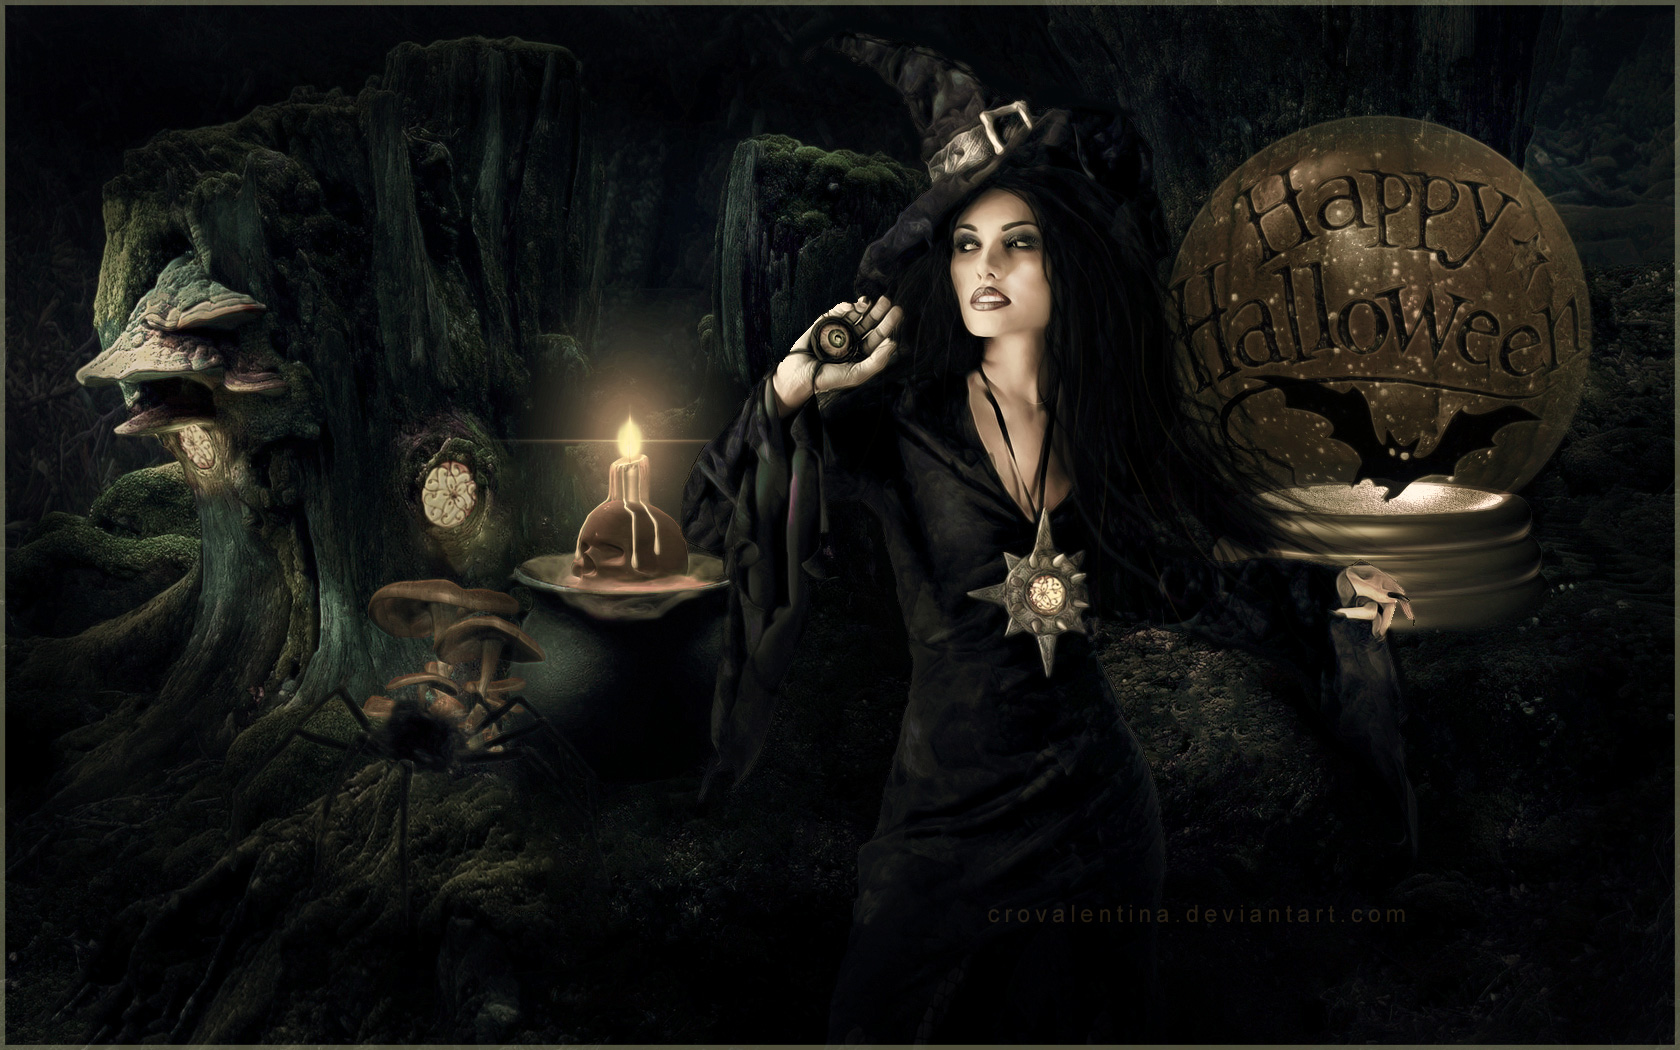 Free Witch Wallpapers and Backgrounds - WallpaperSafari